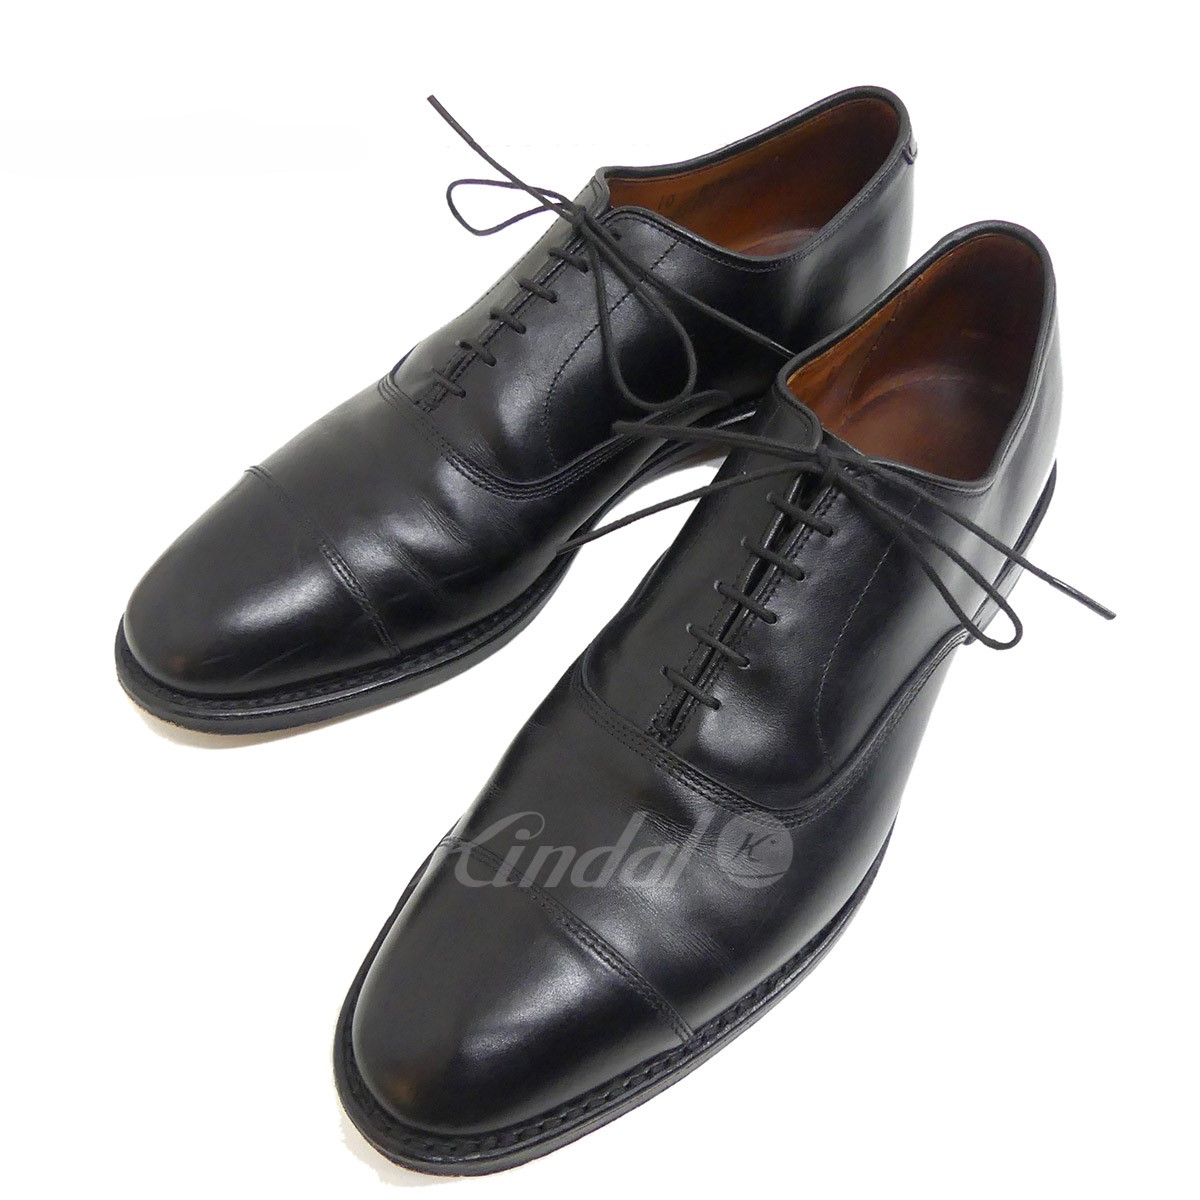 3a2536c05d8d Allen Edmonds straight tip leather shoes PARK AVENUE 5615 cap toe black  size: US10 ...